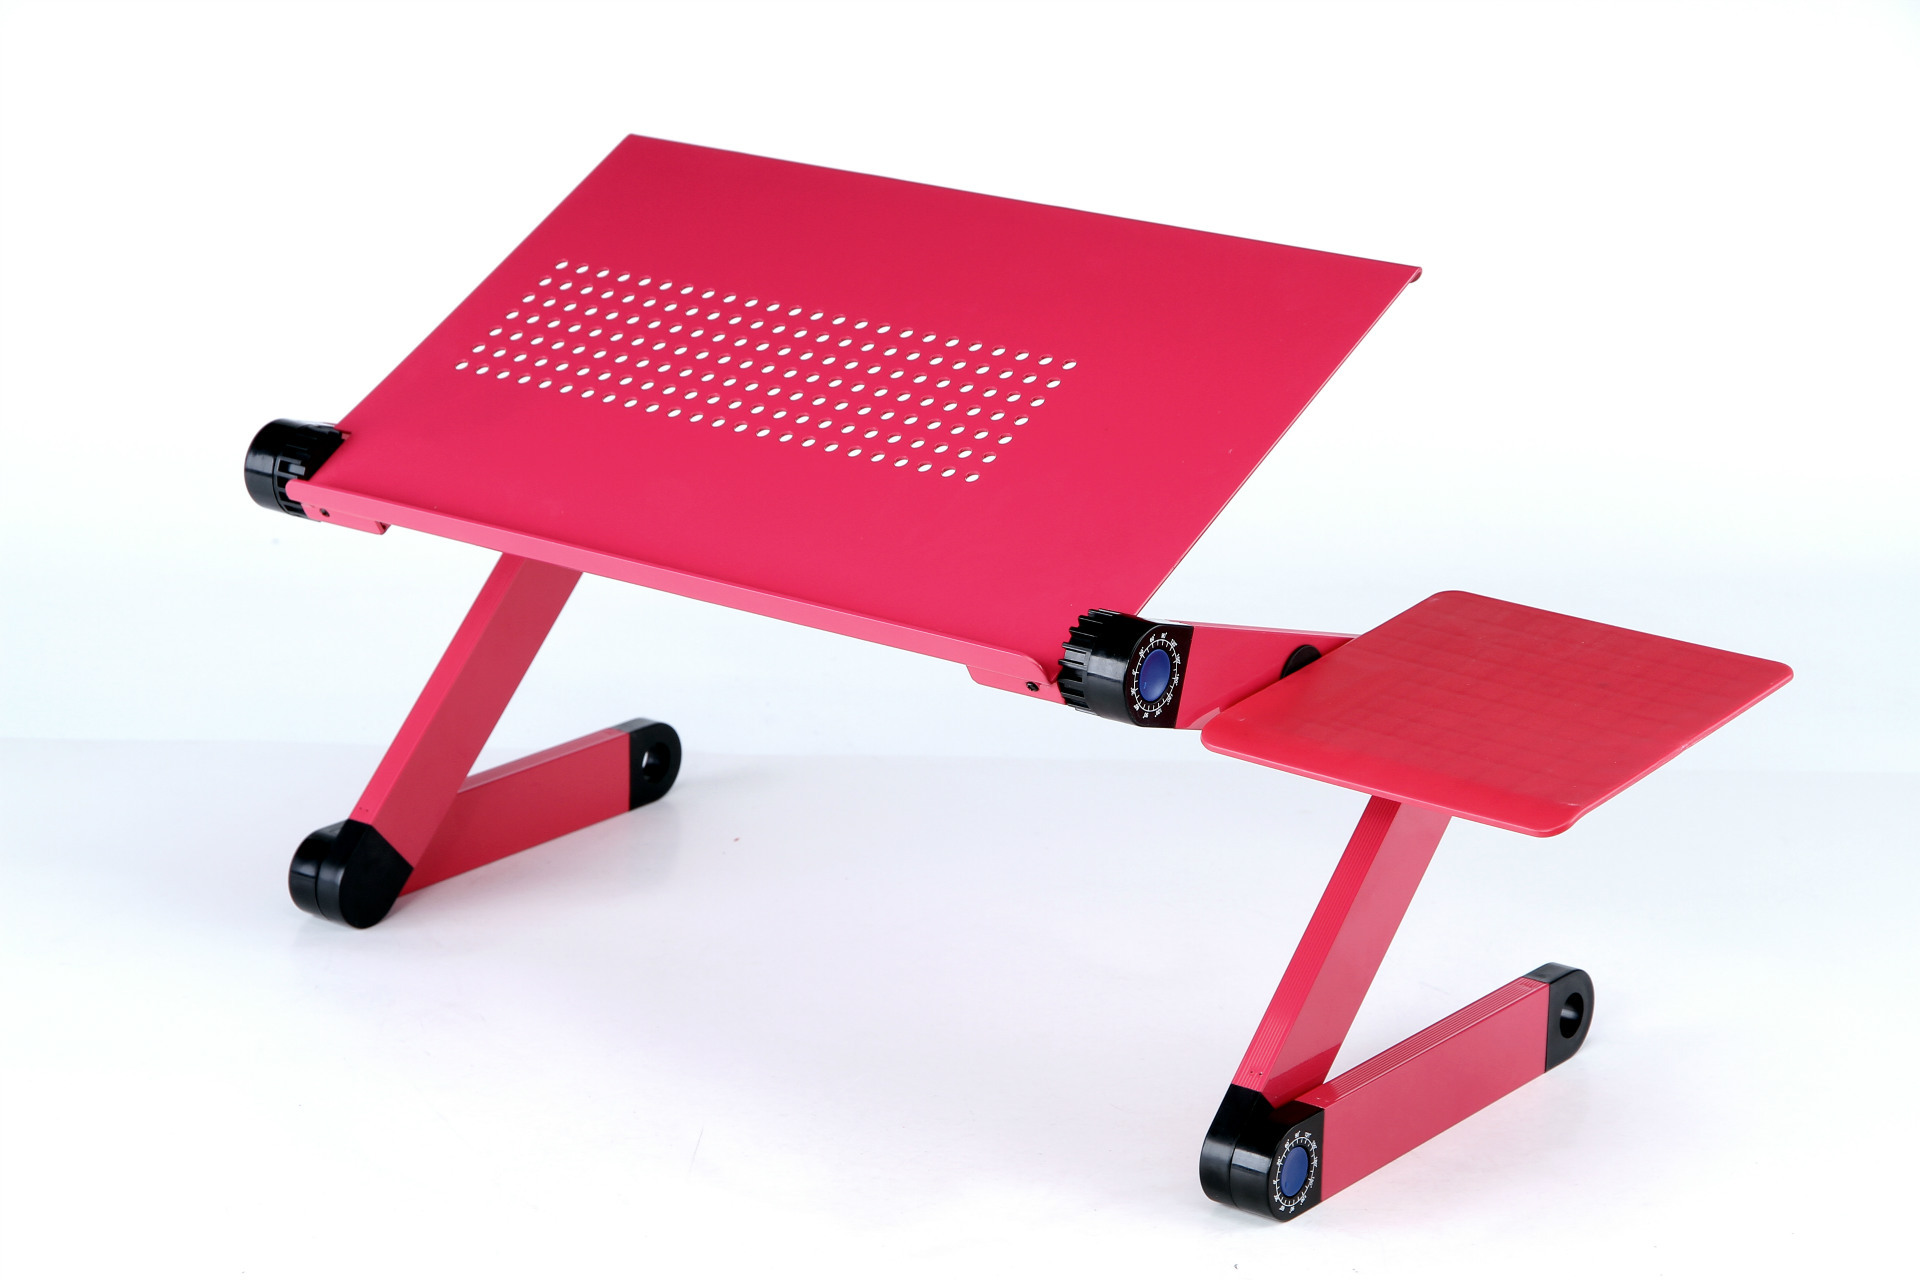 New Style Foldable Laptop desk Aluminum Alloy Portable Computer Desk Bed Office Adjustable Standing Desk With Cooling Fan rotate 360 degrees student laptop desk computer desk standing lazy bed computer folding computer office desk